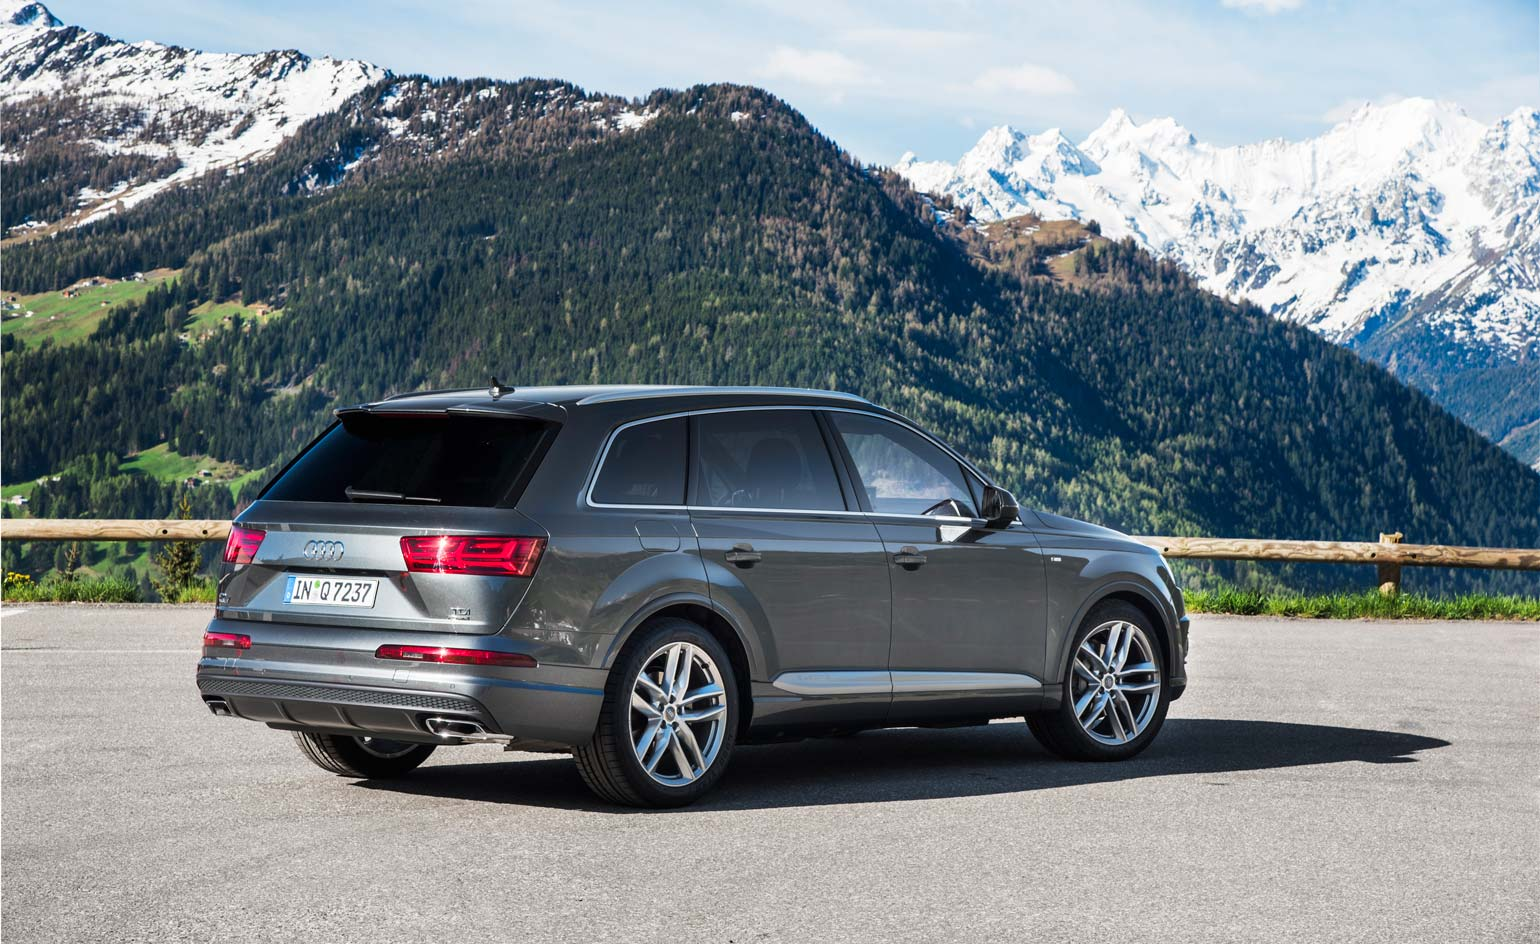 new and improved model audi set to release the latest q7